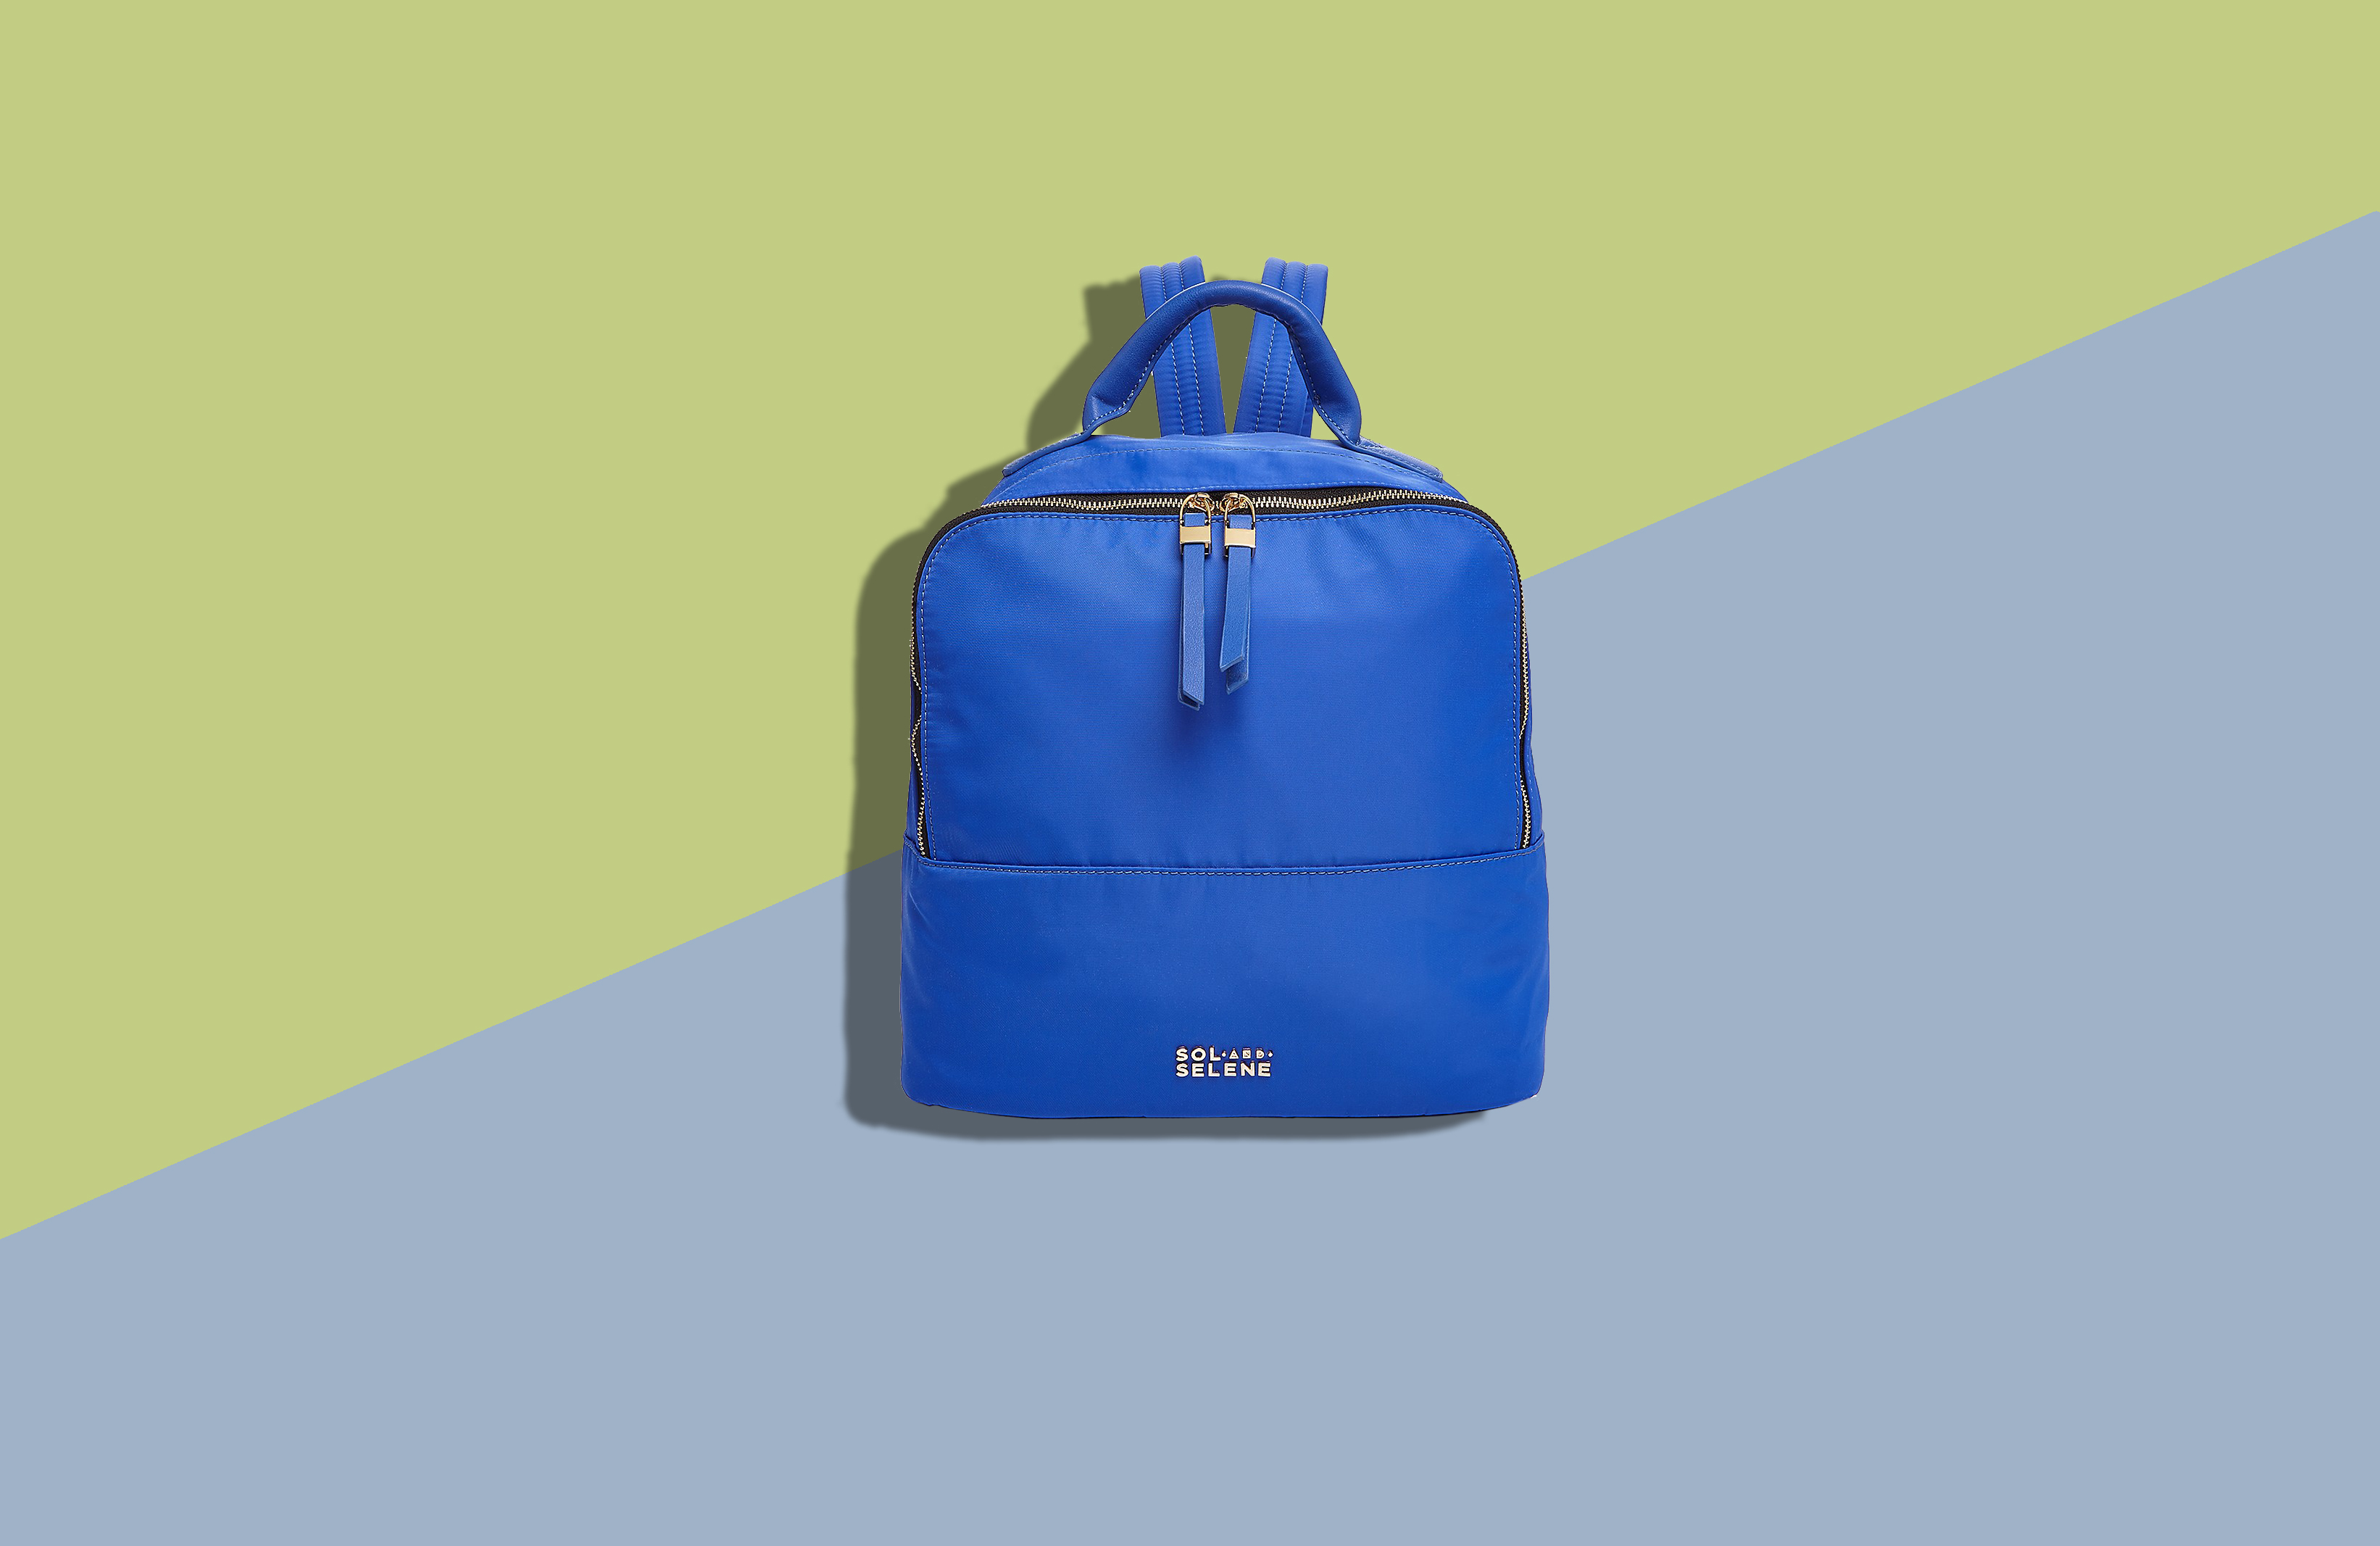 7 Stylish Sport Backpacks for Fall